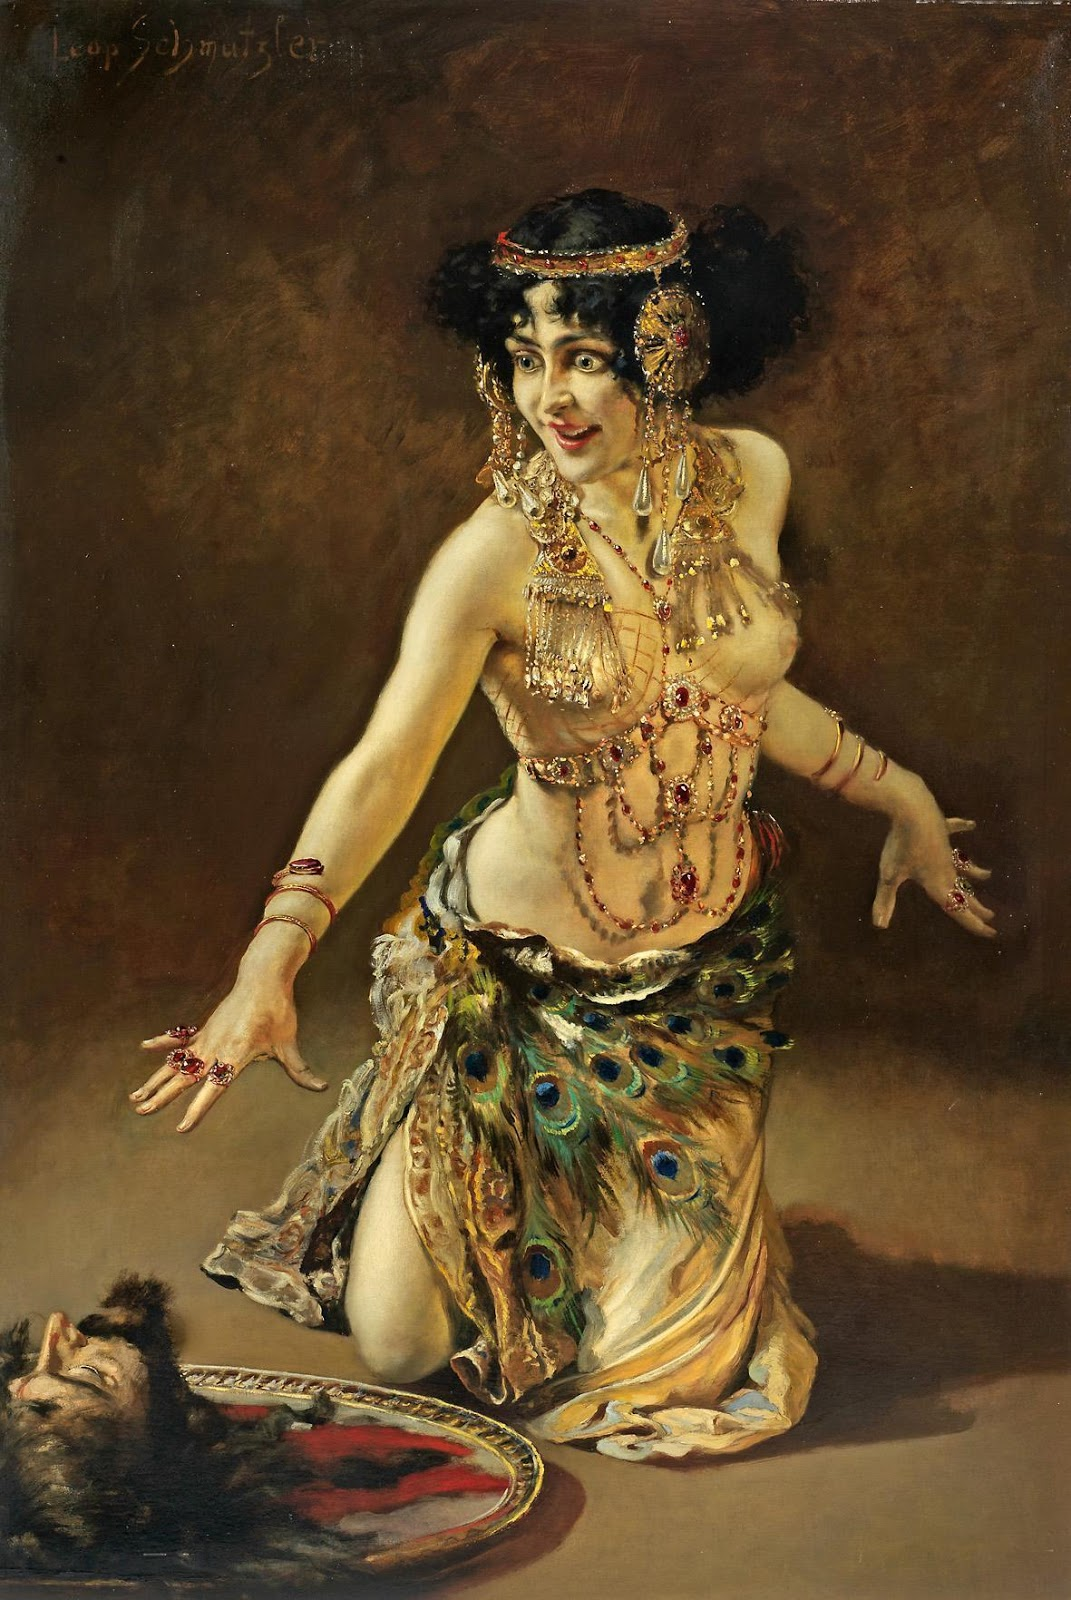 Dance of Salomé (circa 1905-1907)